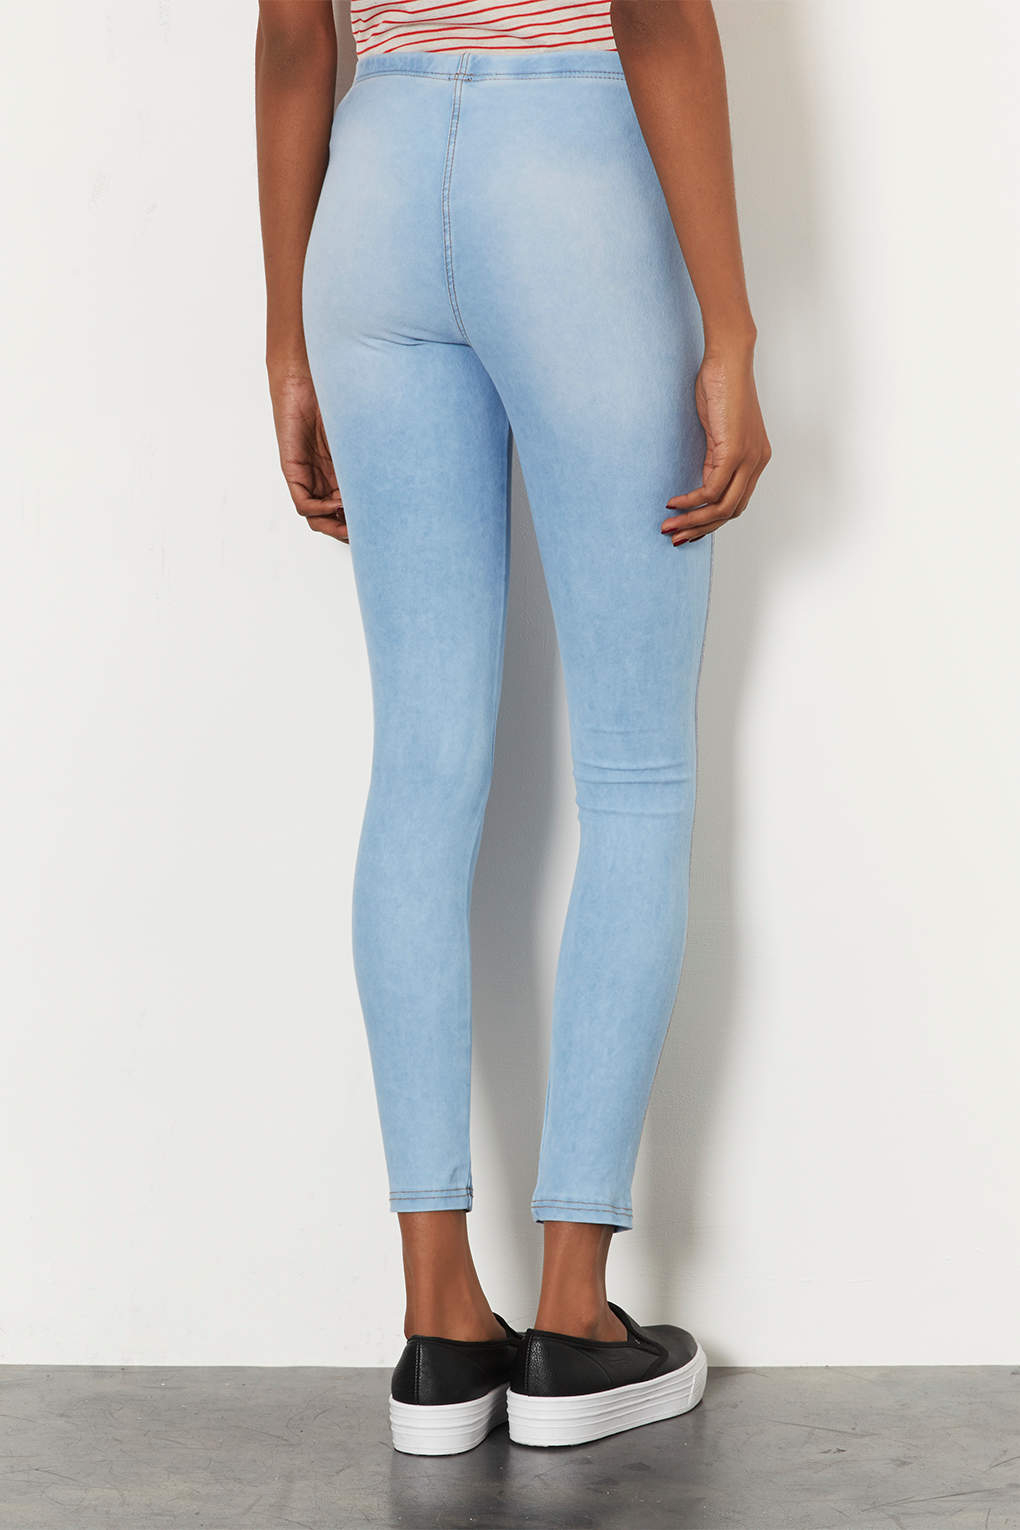 Looking for Jeggings? Find Women's Jeggings, Juniors Jeggings and Girls Jeggings at Macy's.